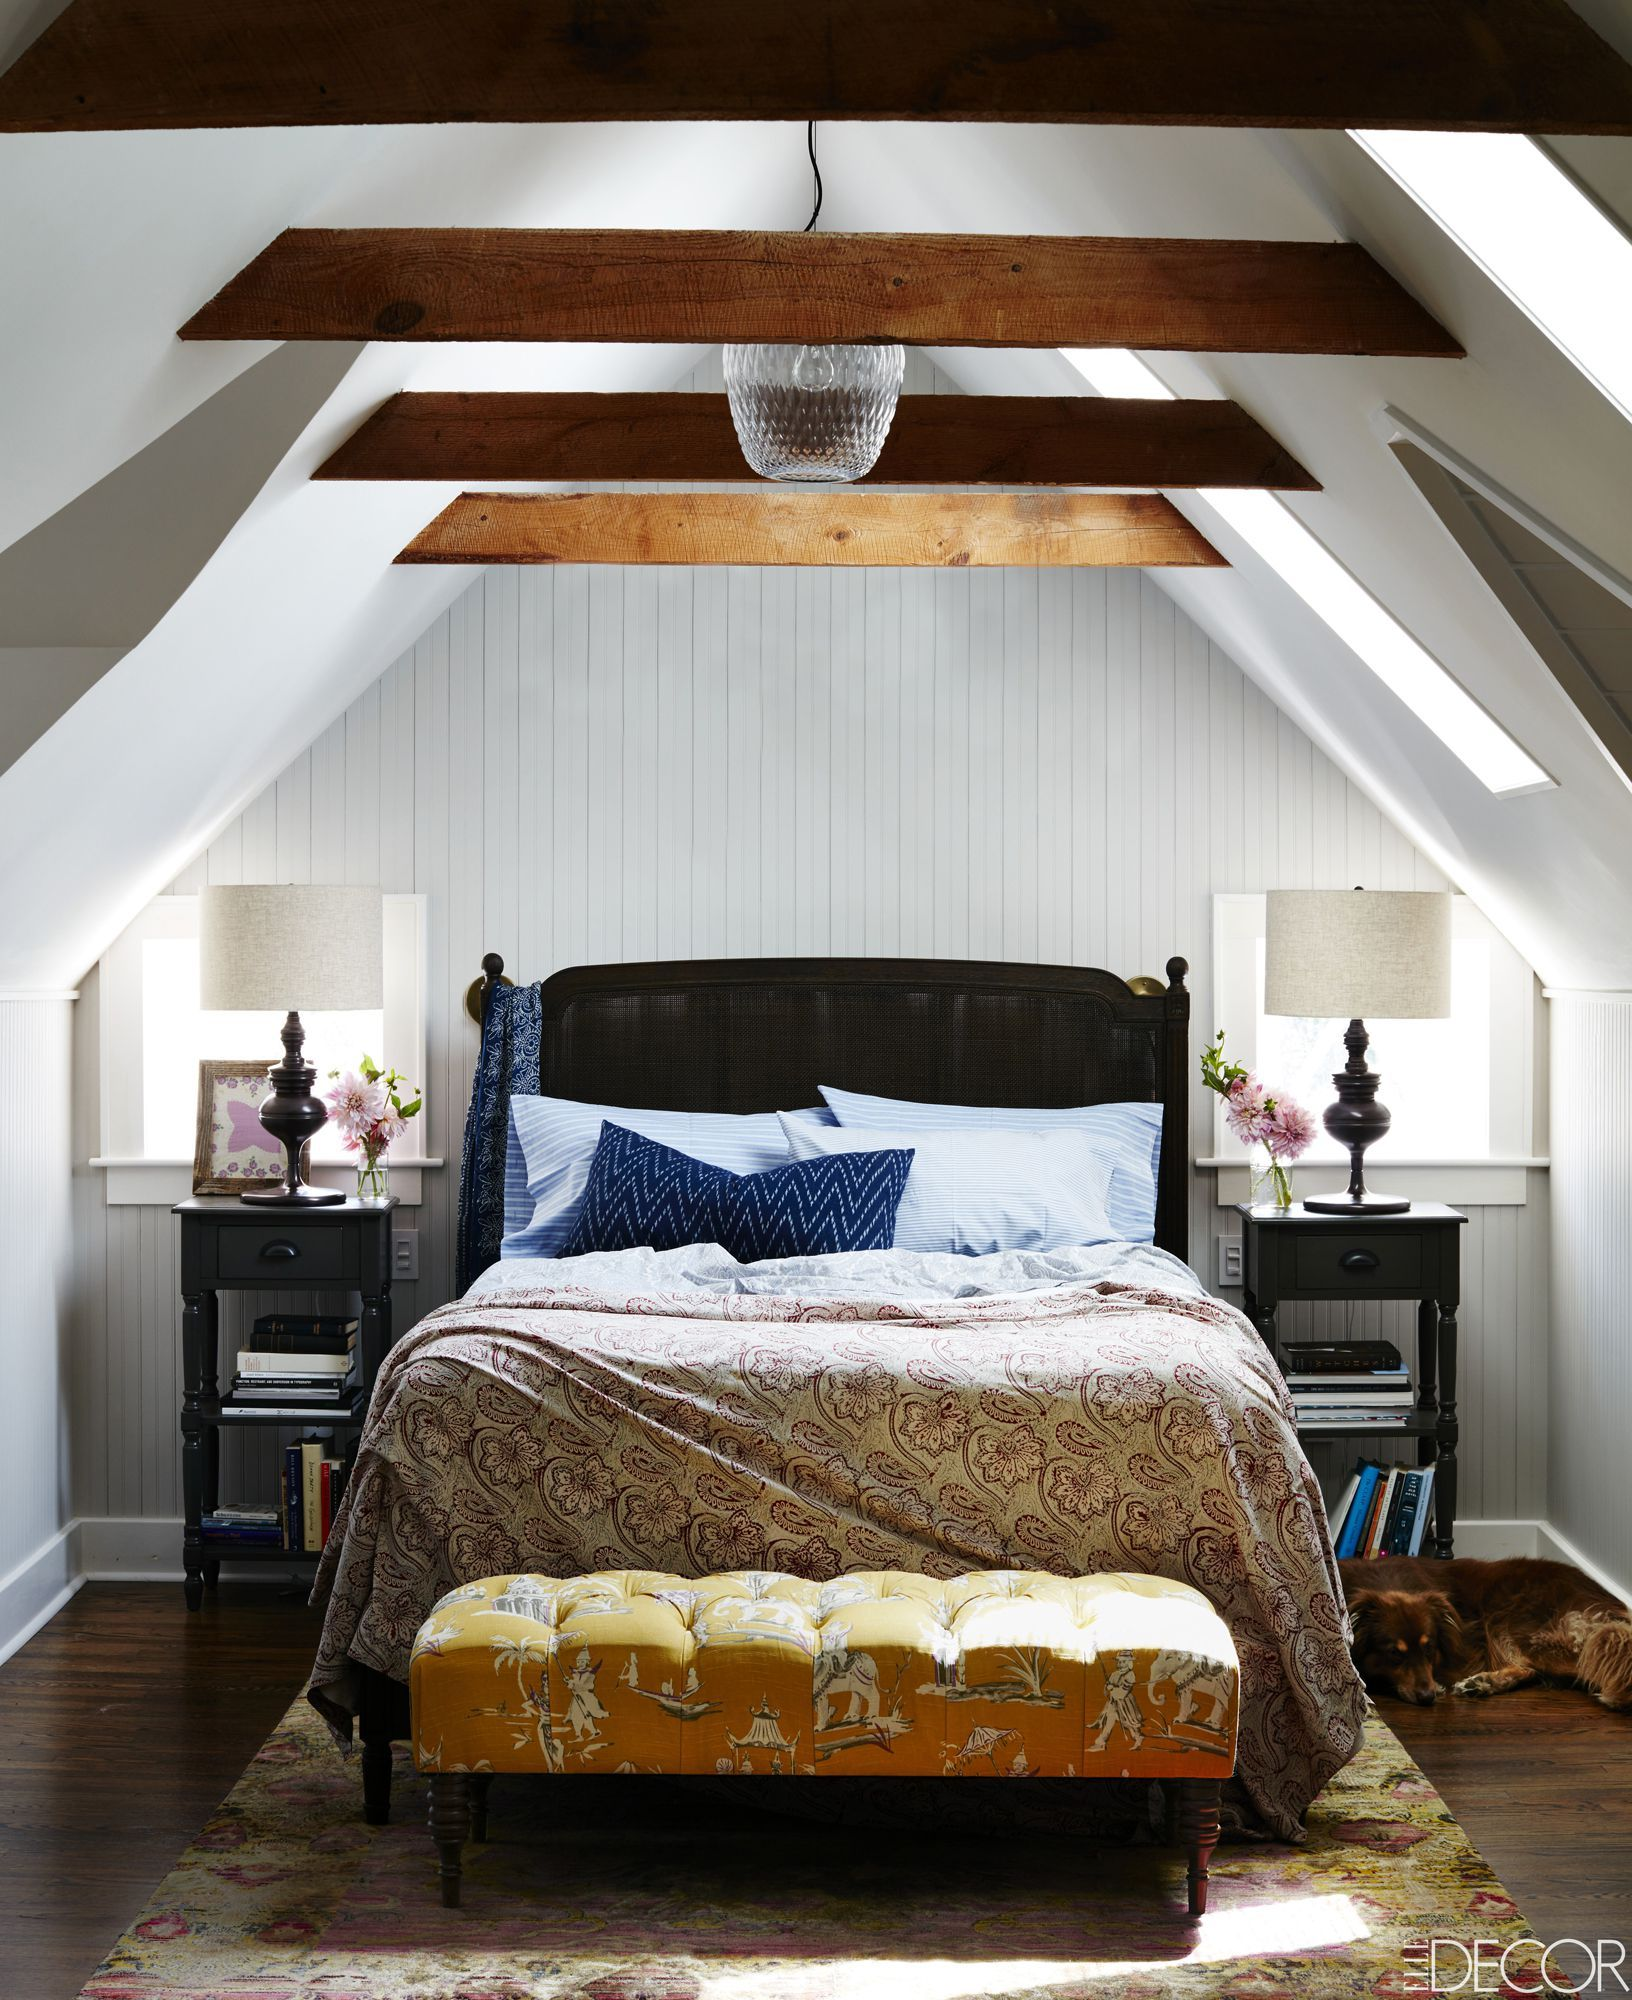 Stephen Kent Johnson. Warm White Bedroom & 43 Small Bedroom Design Ideas - Decorating Tips for Small Bedrooms